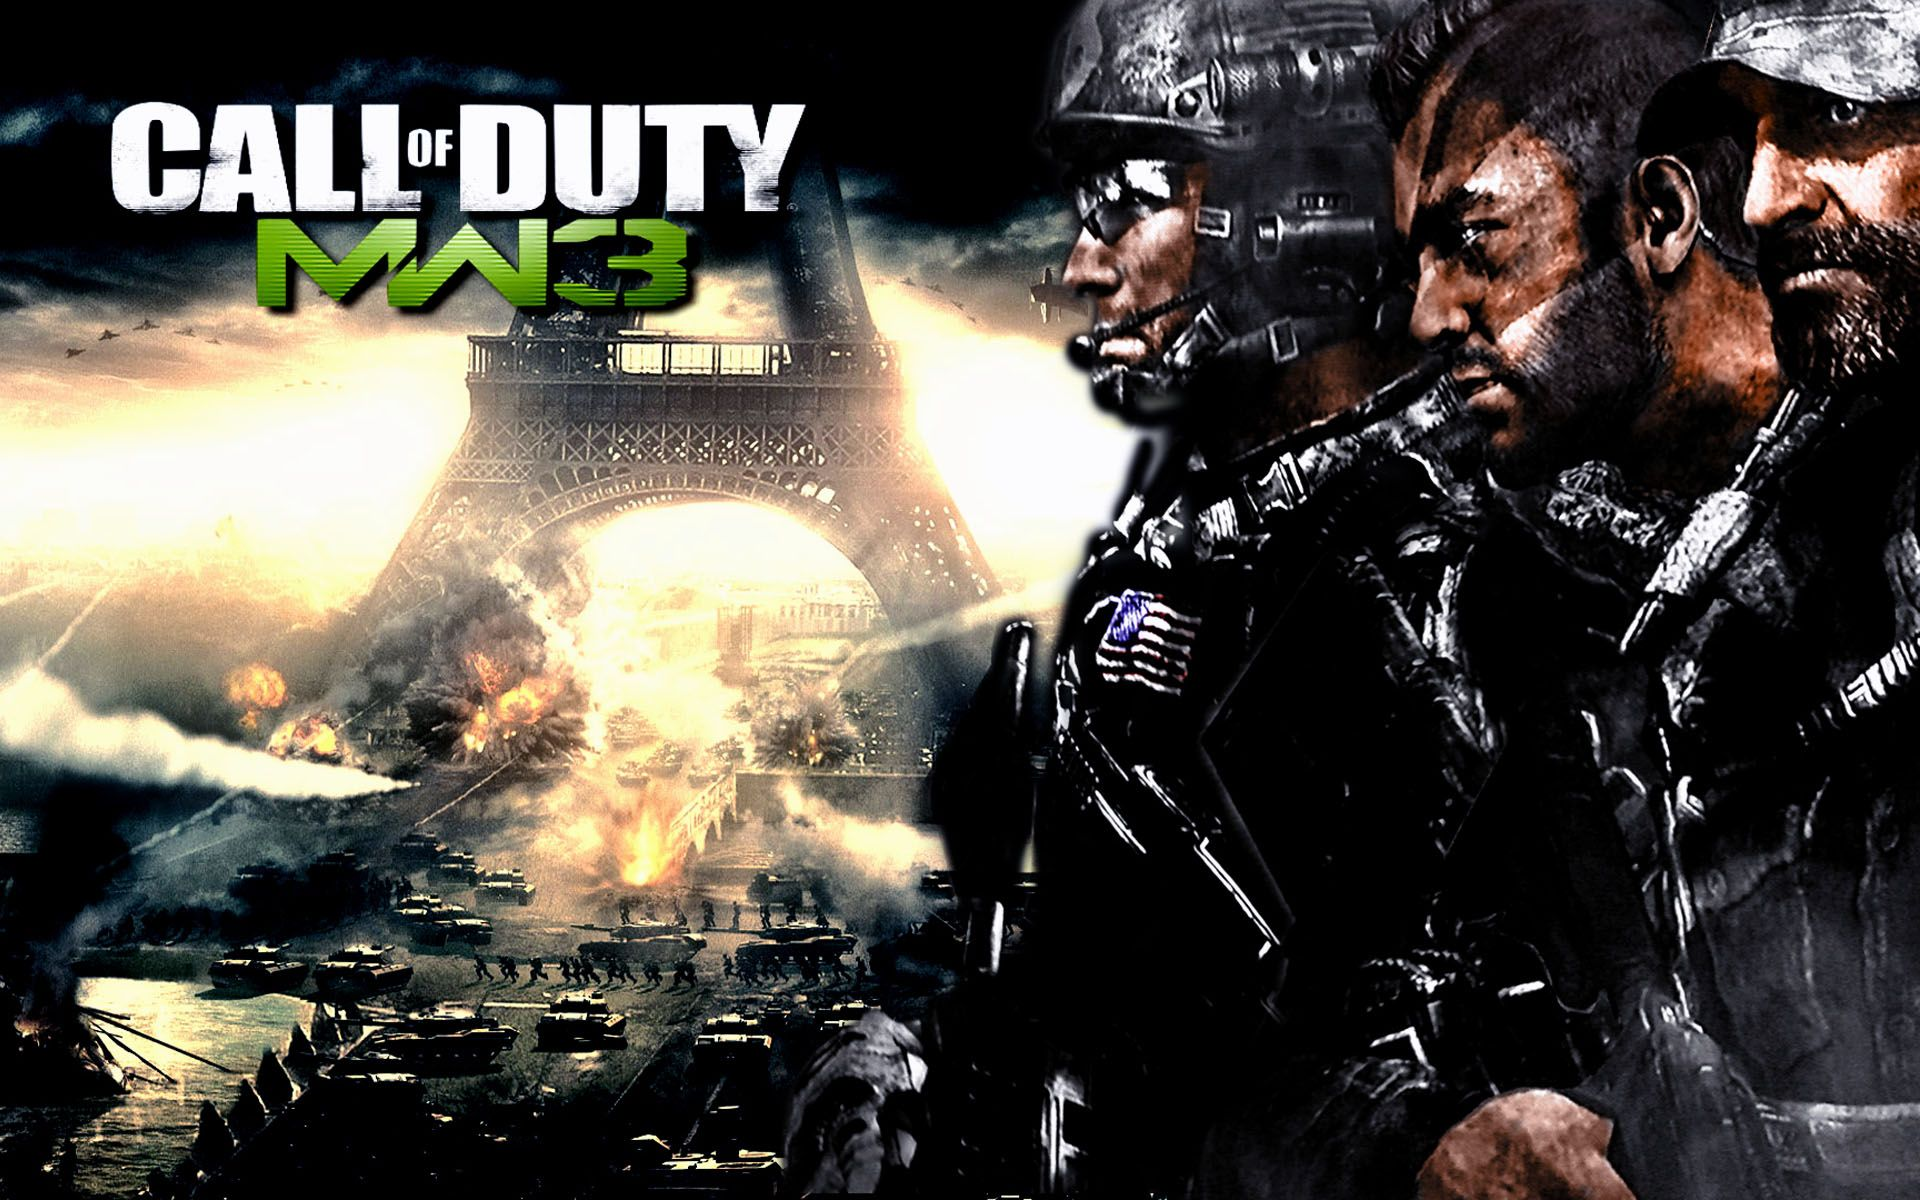 Call Of Duty Modern Warfare 3 Poster Wallpapers Download Free Call Of Duty Modern Warfare 3 Poster In Hd High Call Of Duty Modern Warfare Call Of Duty Black Call of duty modern warfare 3 wallpaper